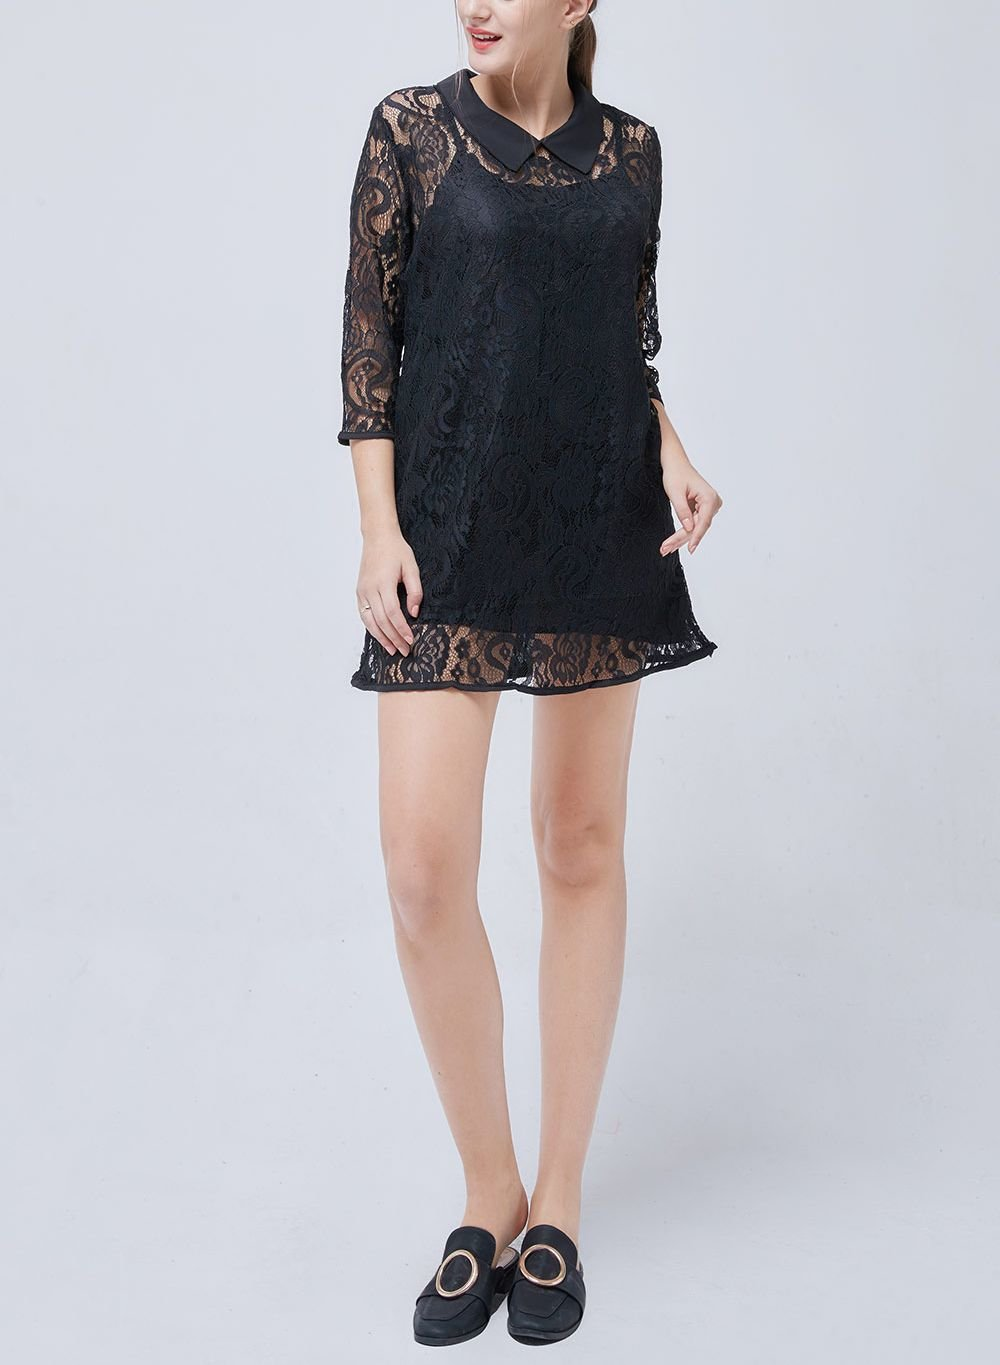 Long Sleeved Lace Top or Mini Dress